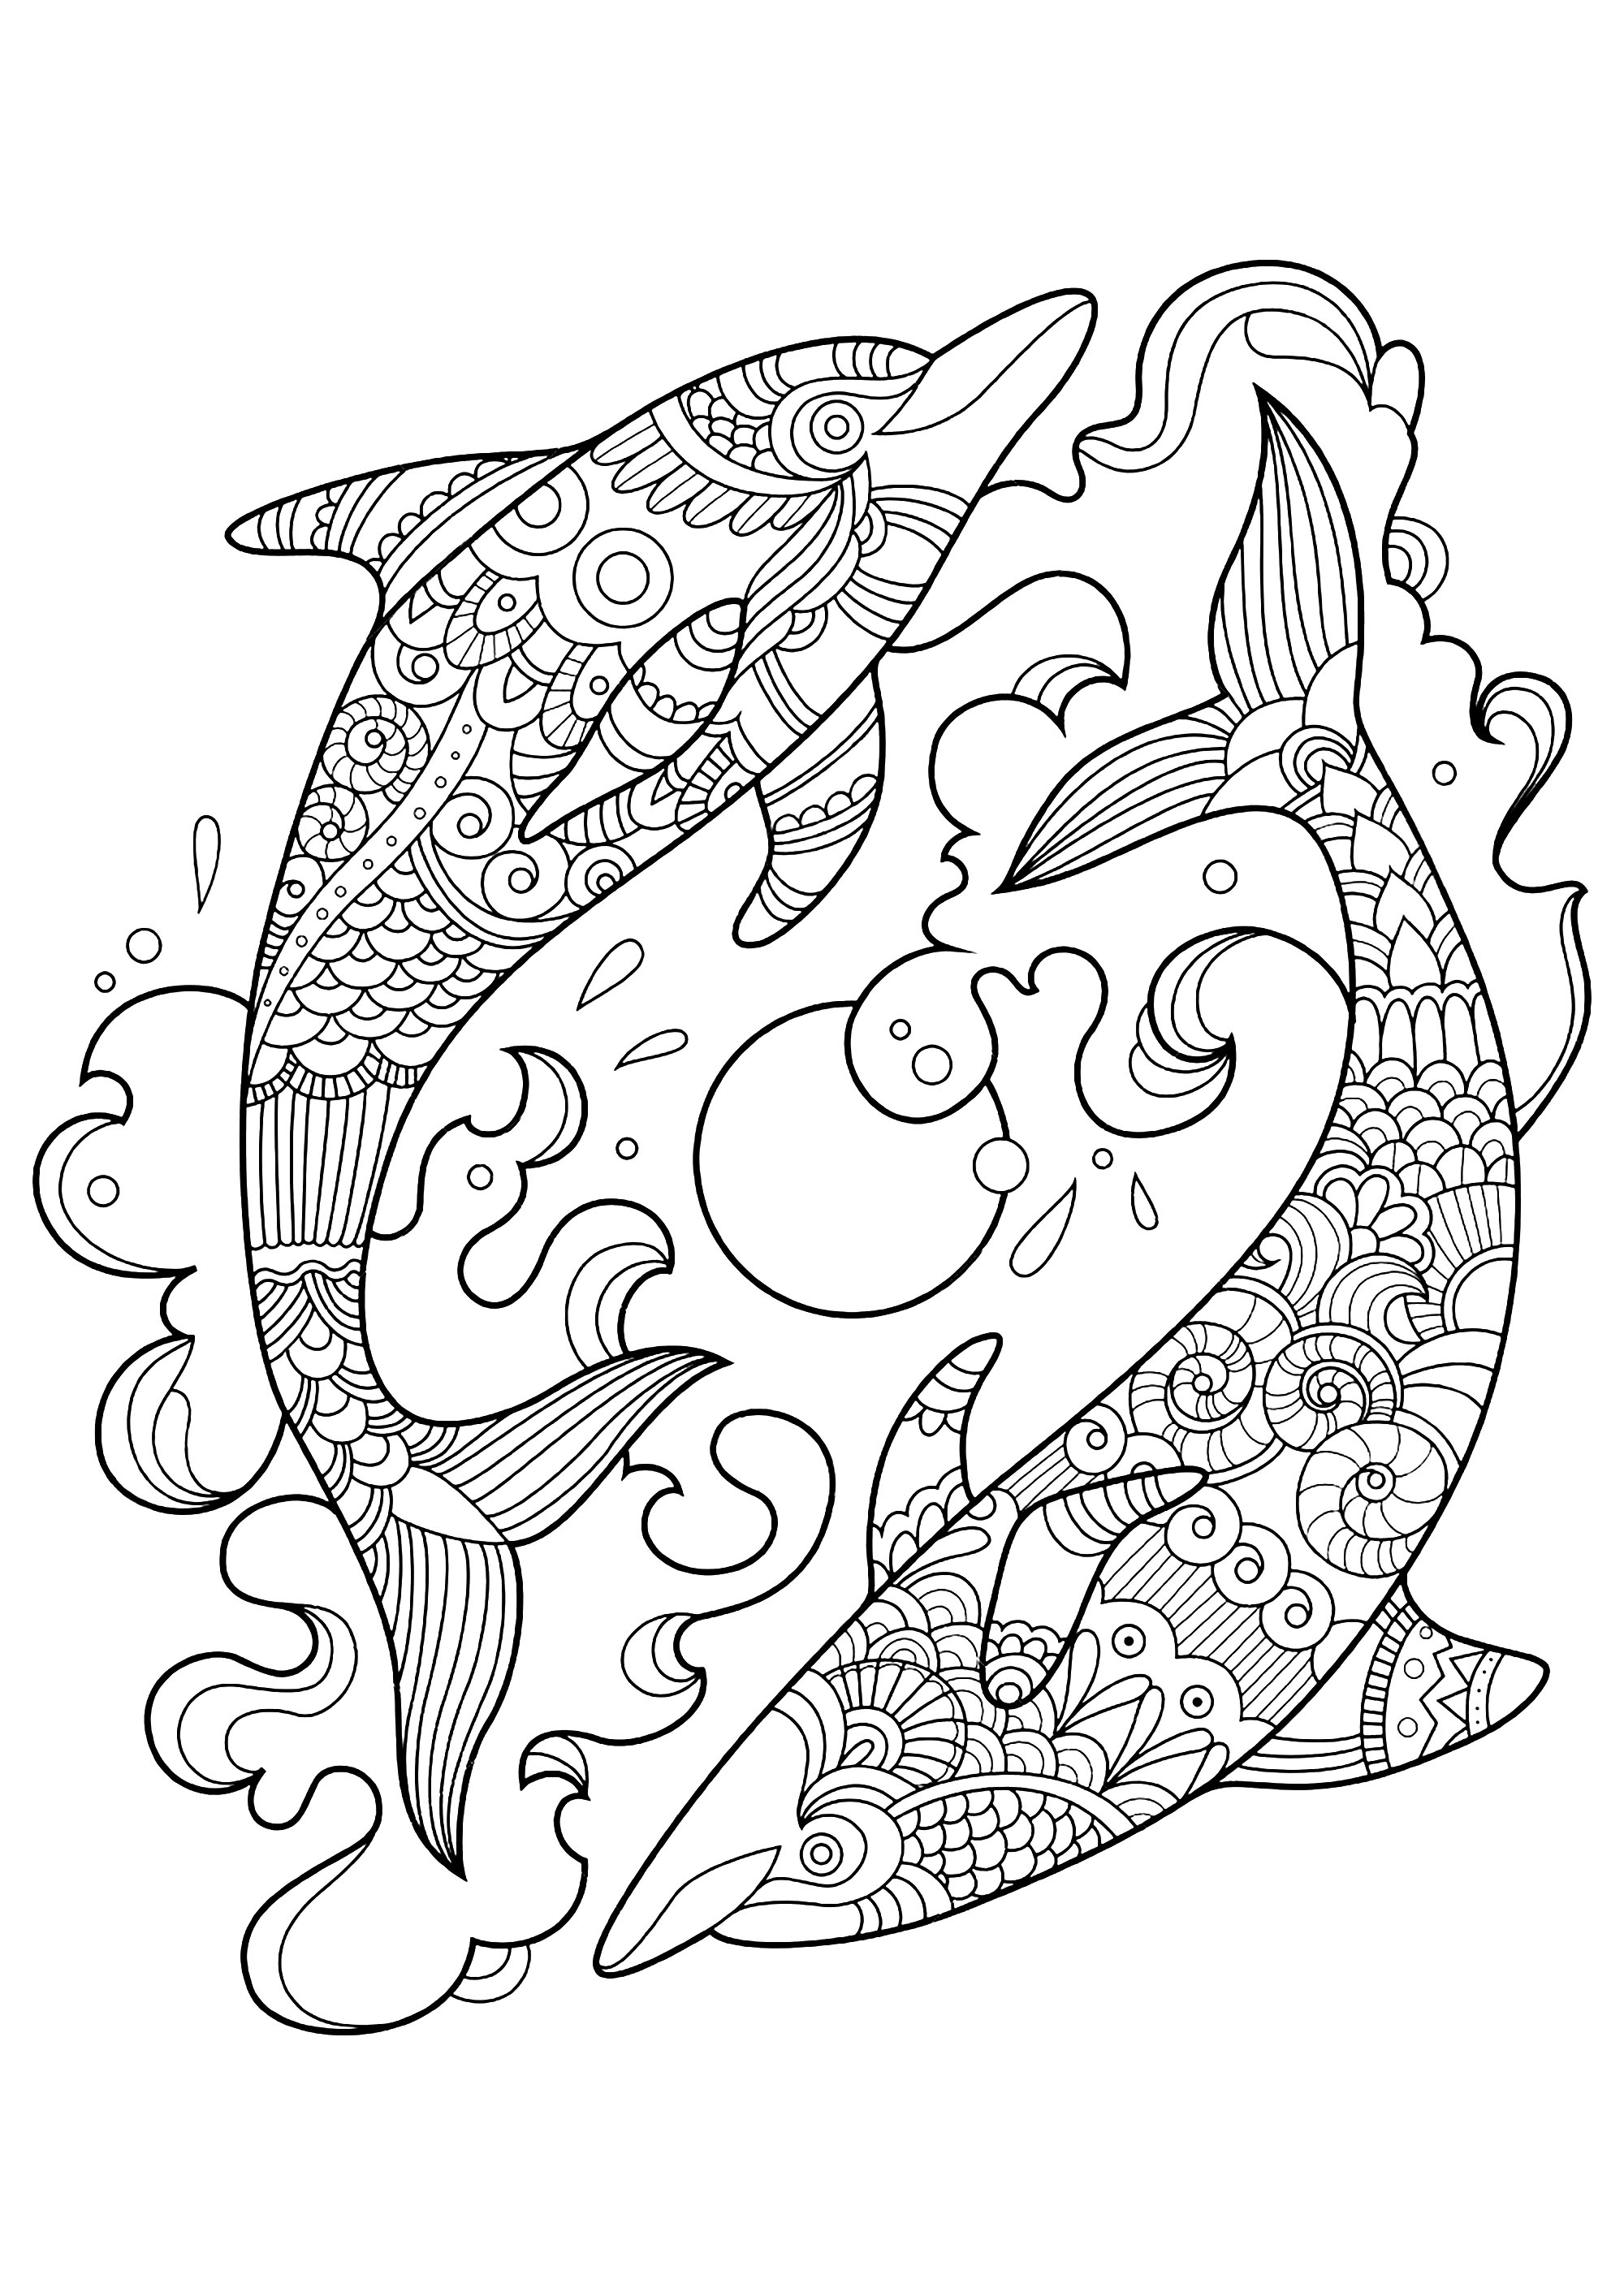 coloring pages dolphin dolphin coloring pages download and print dolphin coloring pages dolphin